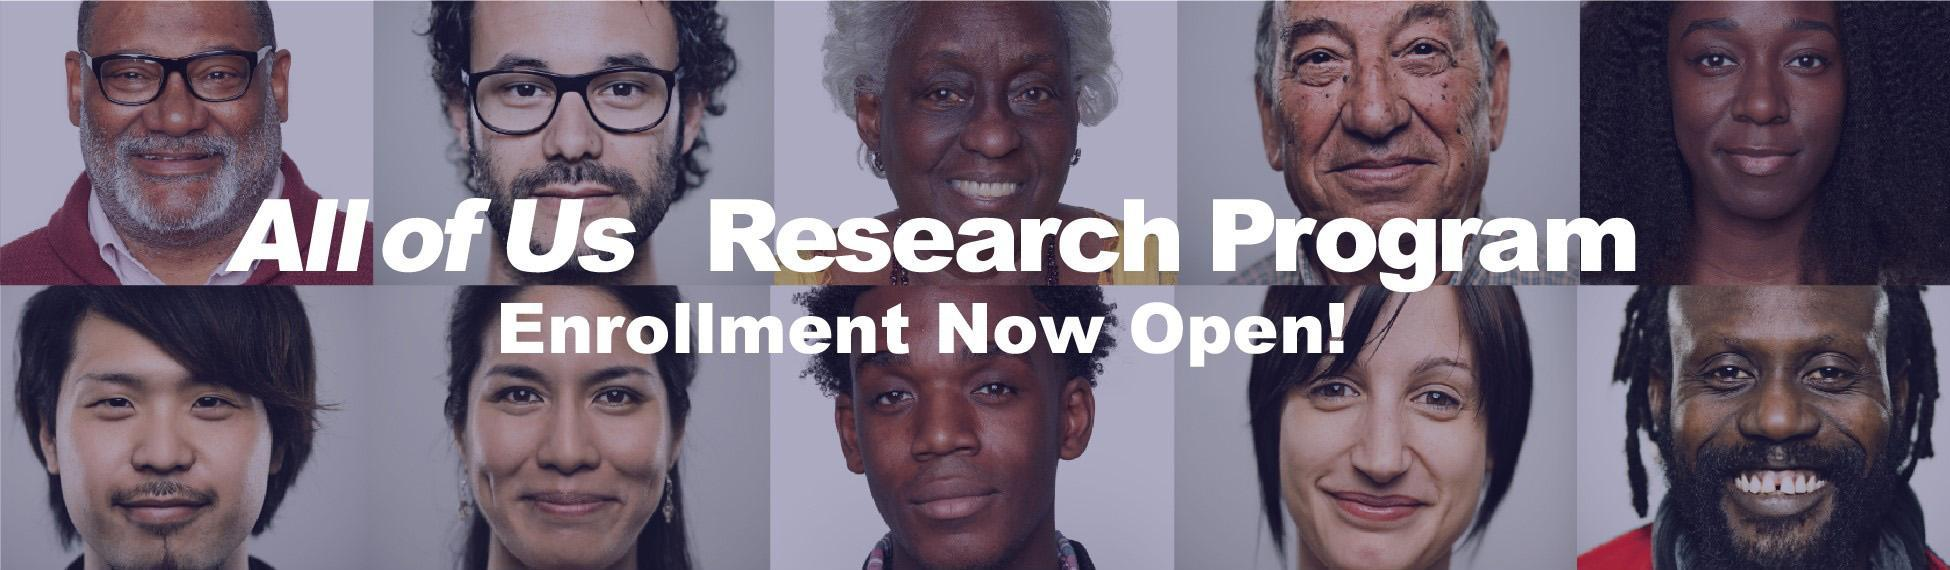 All of Us Research Program Enrollment now open